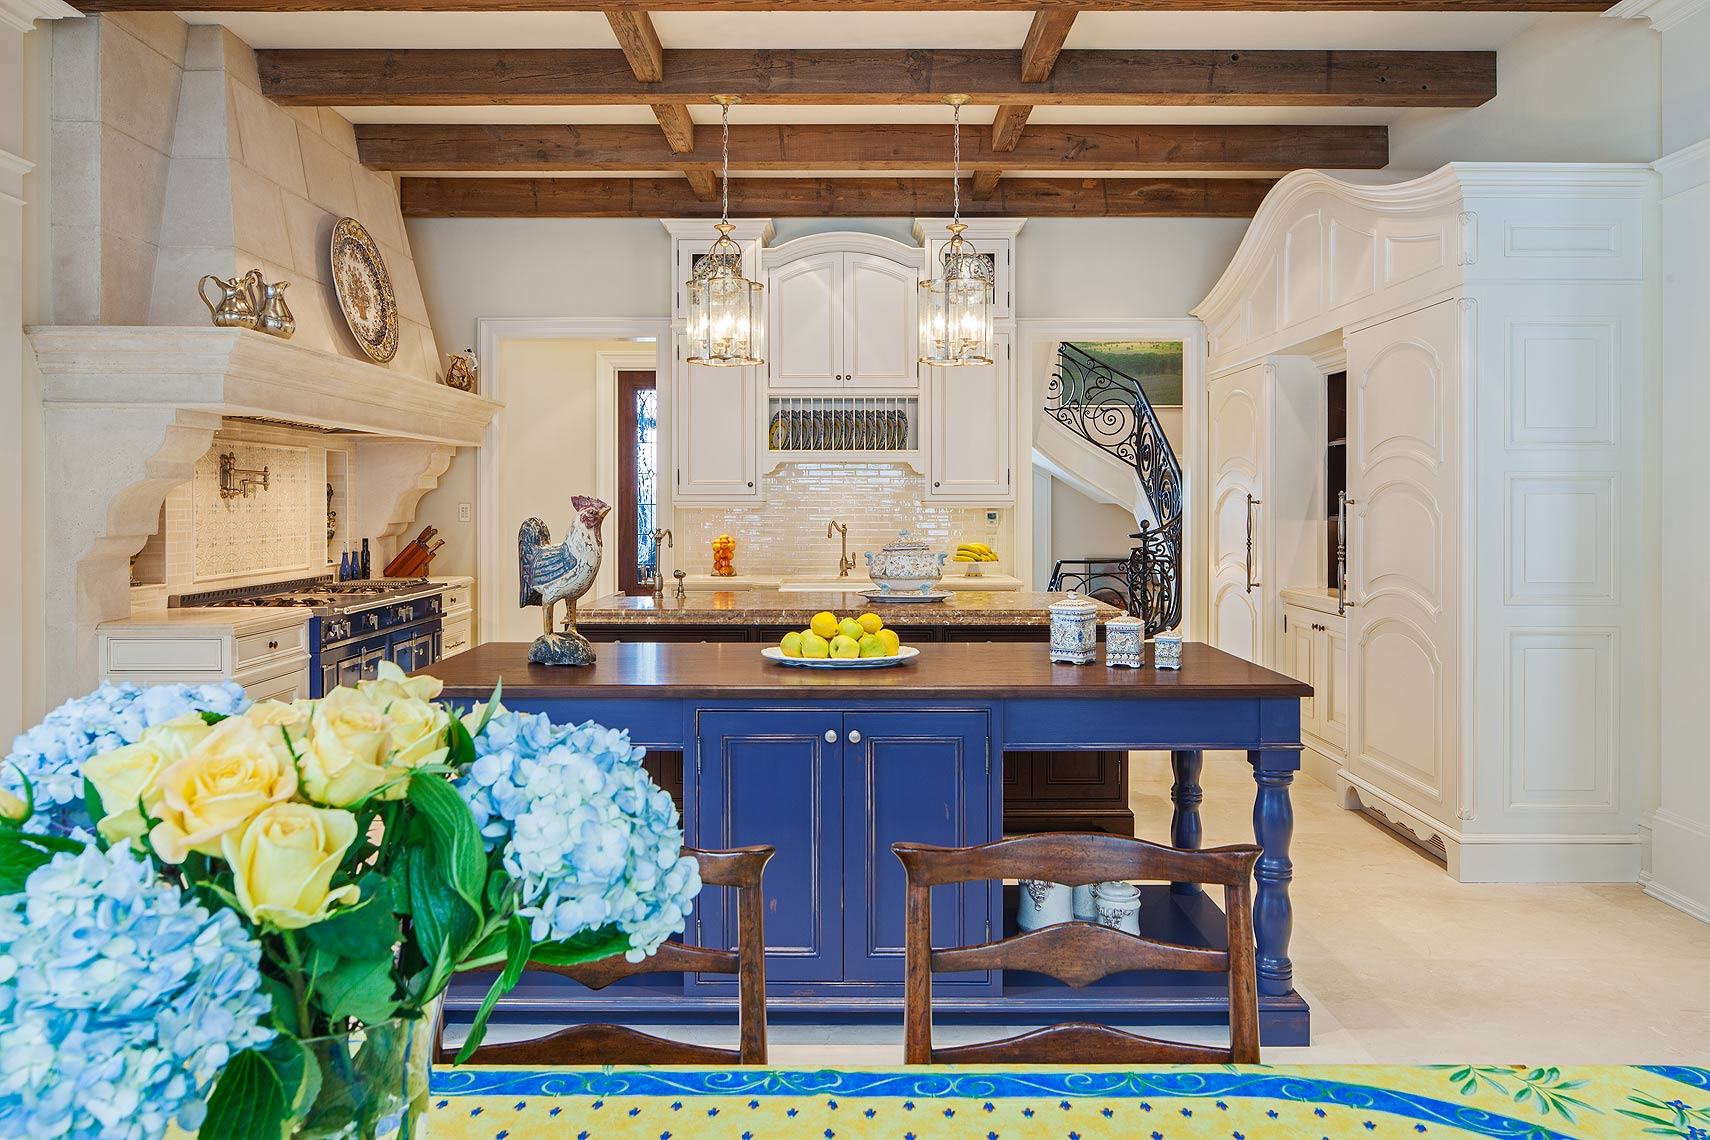 Kitchen with La Cornue oven by Peter A. Sellar Architectural Photographer